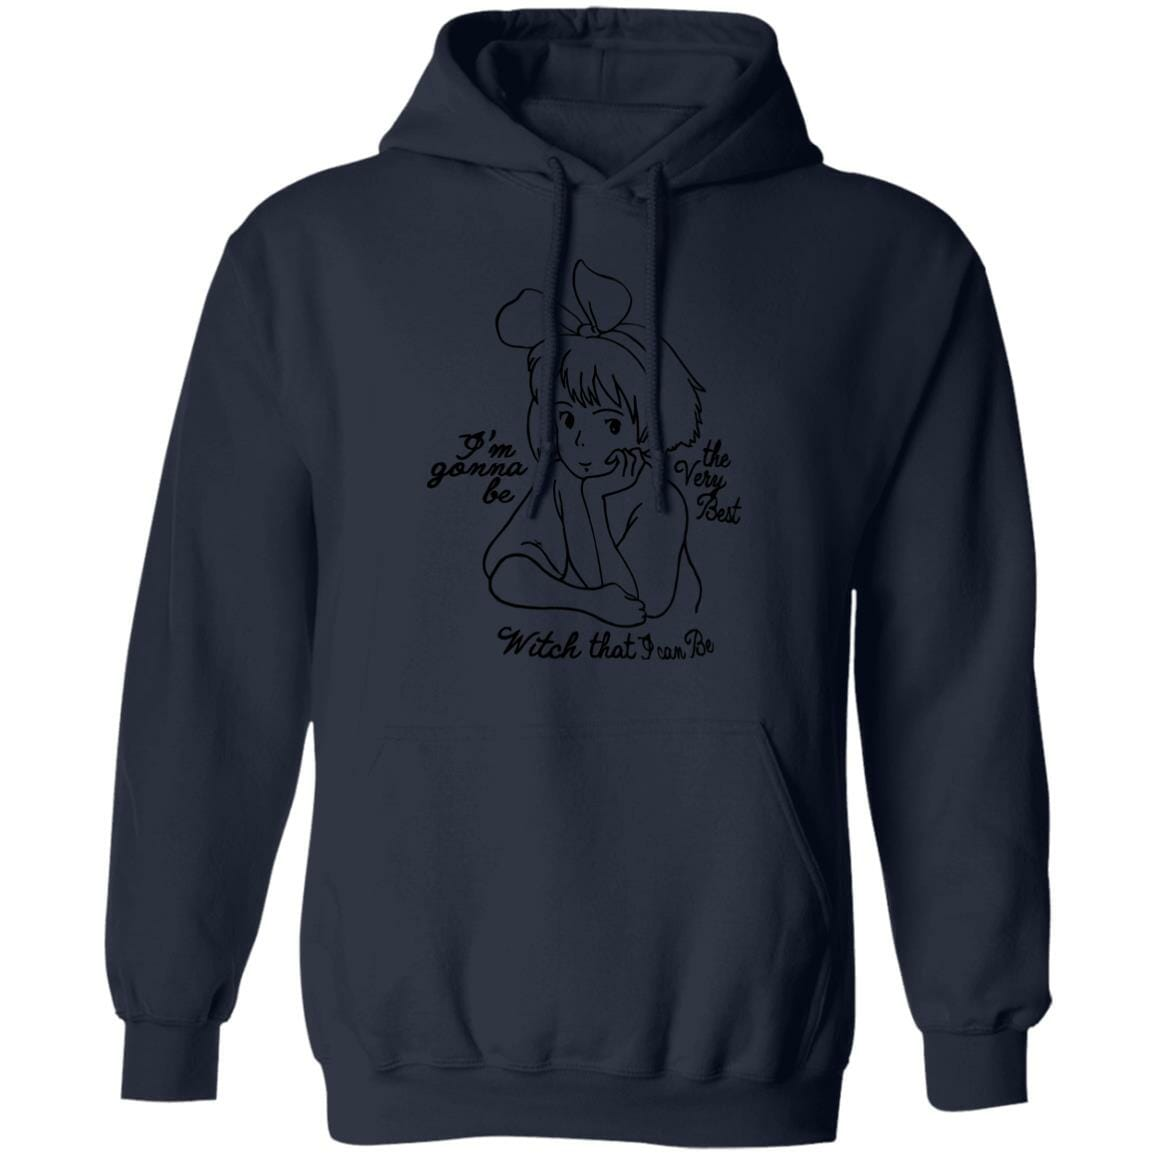 Kiki's Delivery Service – Kiki the Best Witch Hoodie Unisex